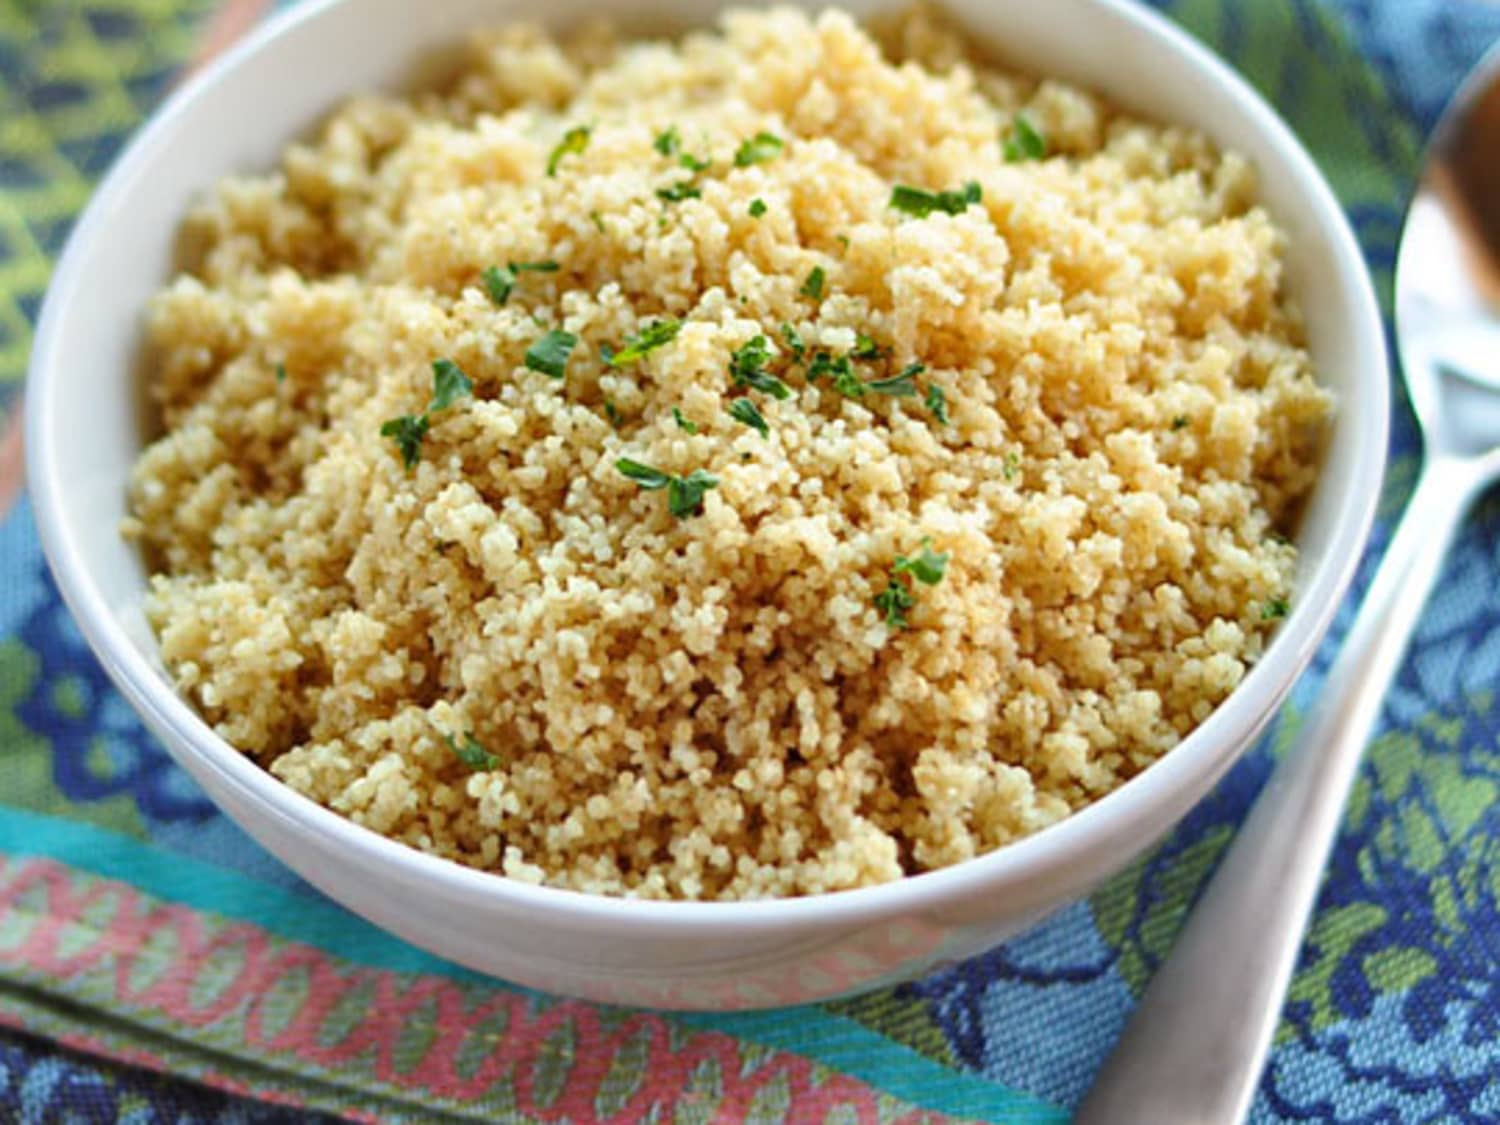 can you eat couscous on whole30 diet